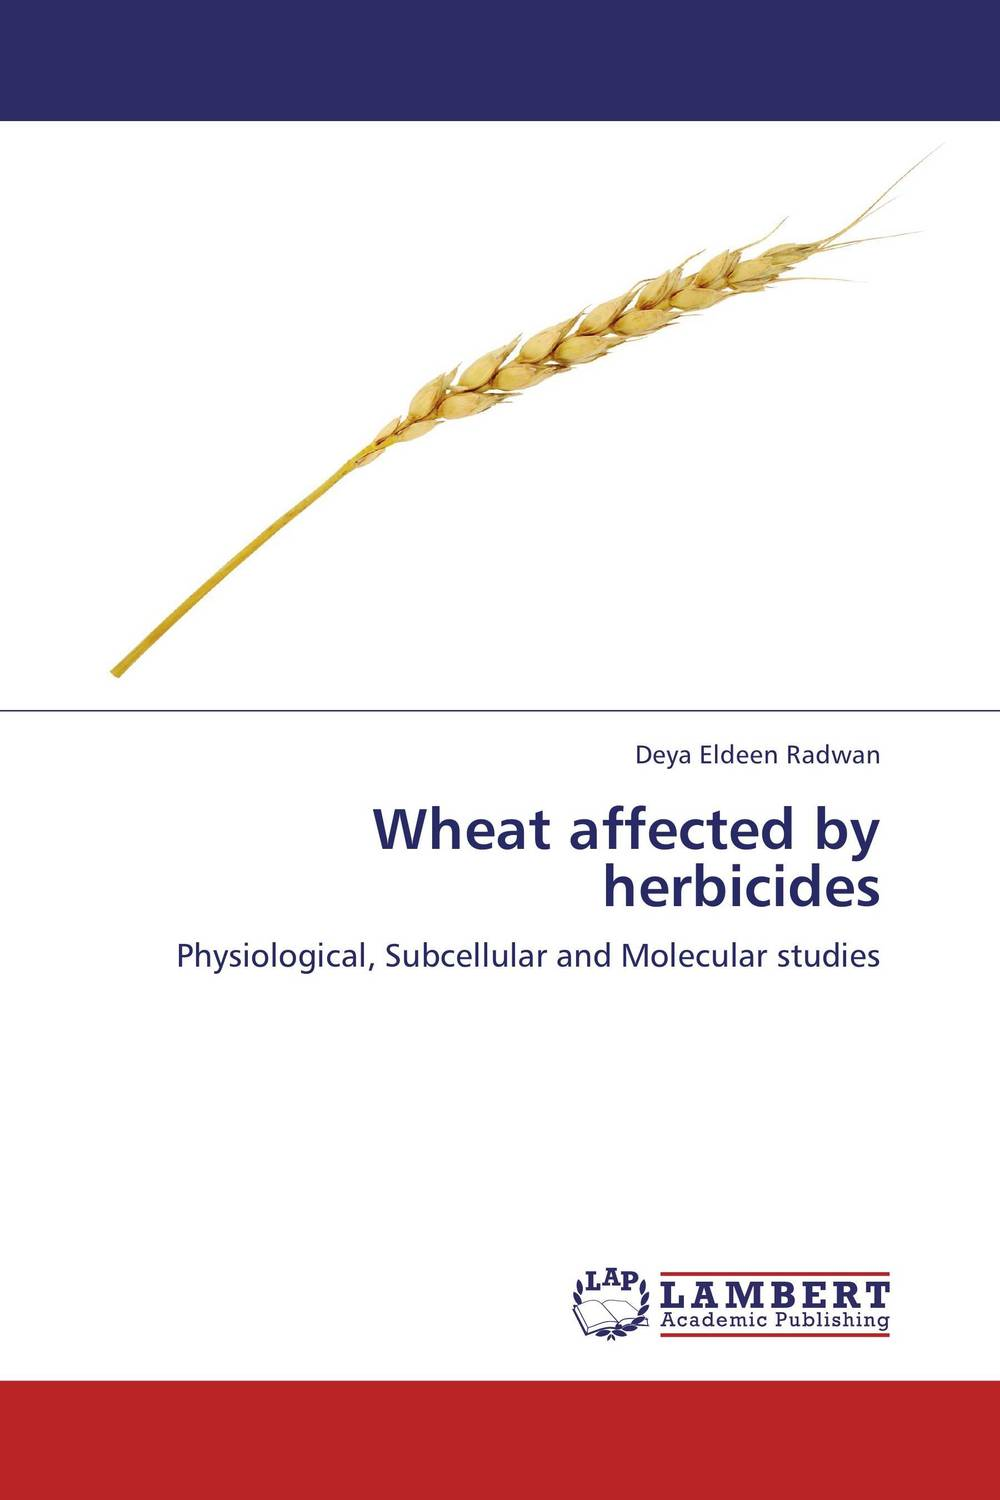 Wheat affected by herbicides wheat breeding for rust resistance